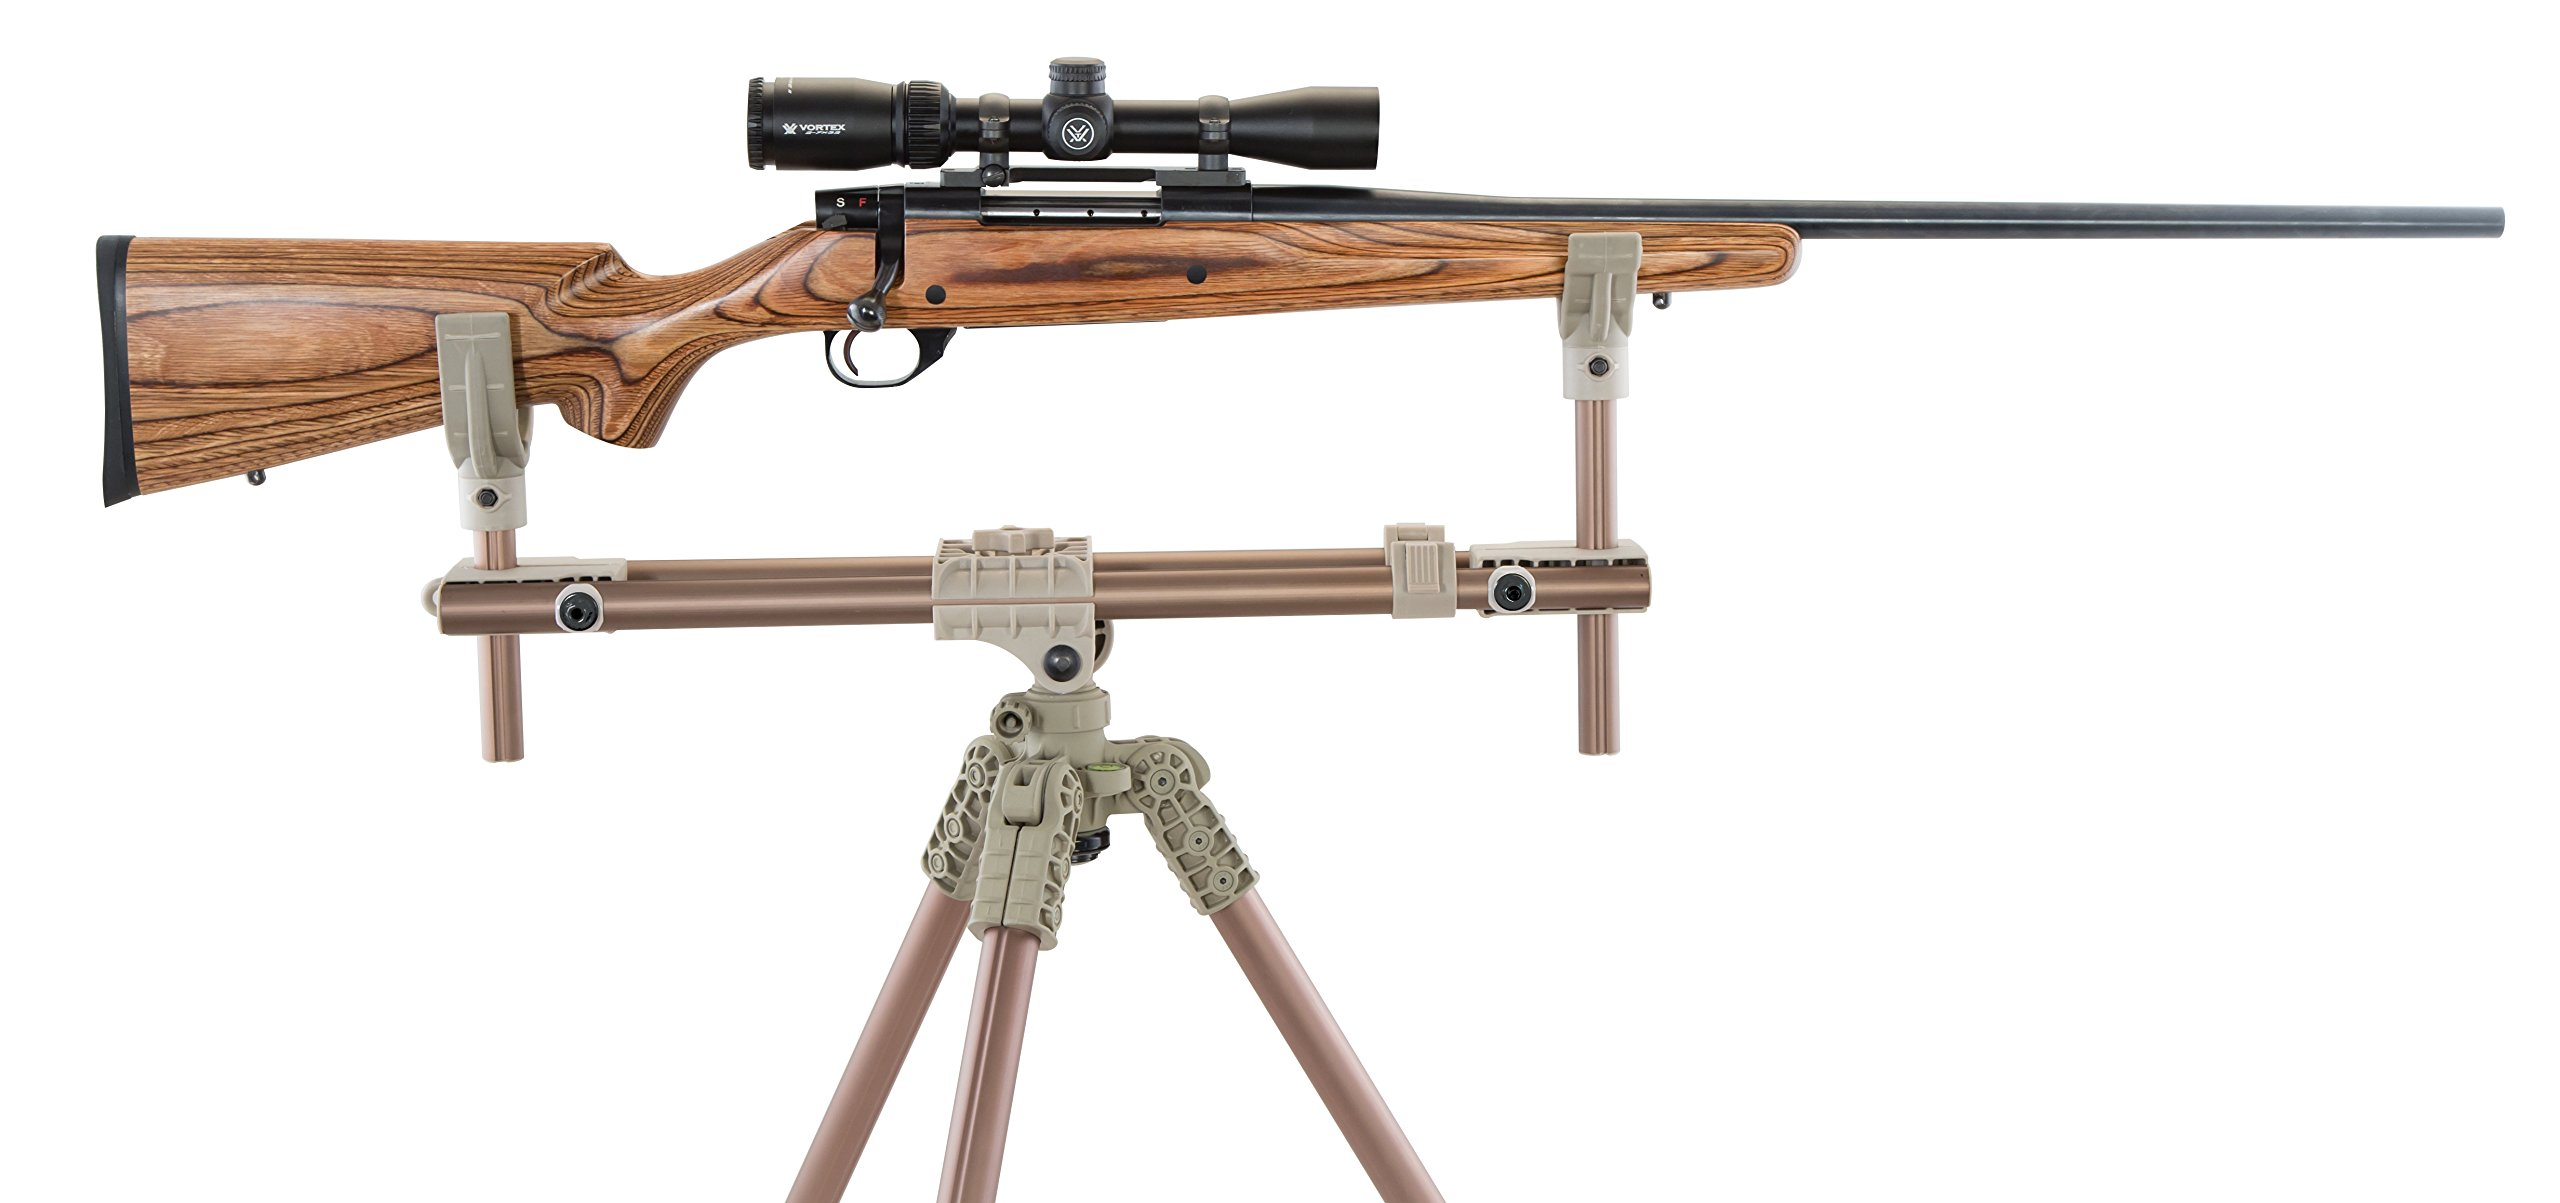 Caldwell DeadShot FieldPod Max Adjustable Ambidextrous Rifle Shooting Rest for Outdoor Range and Hunting by Caldwell (Image #4)